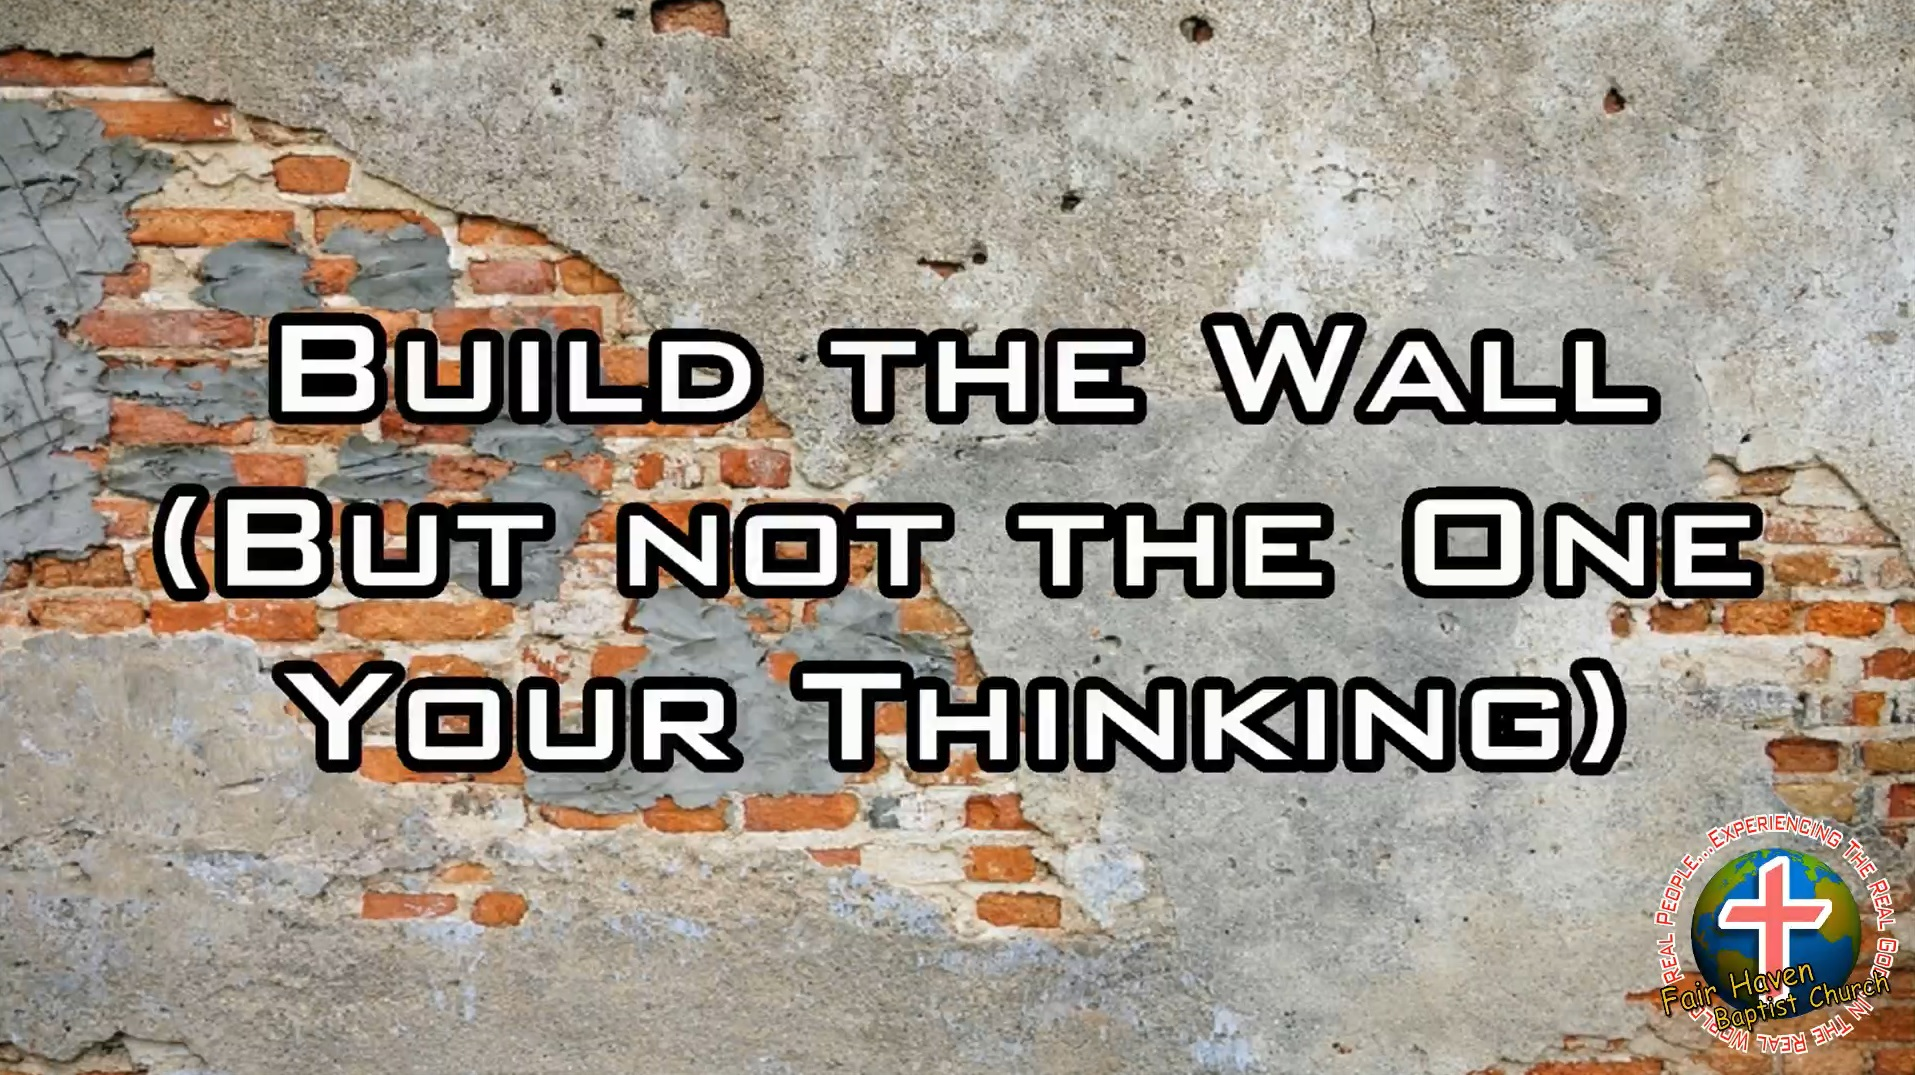 Build the Wall, But Not the One Your Thinking